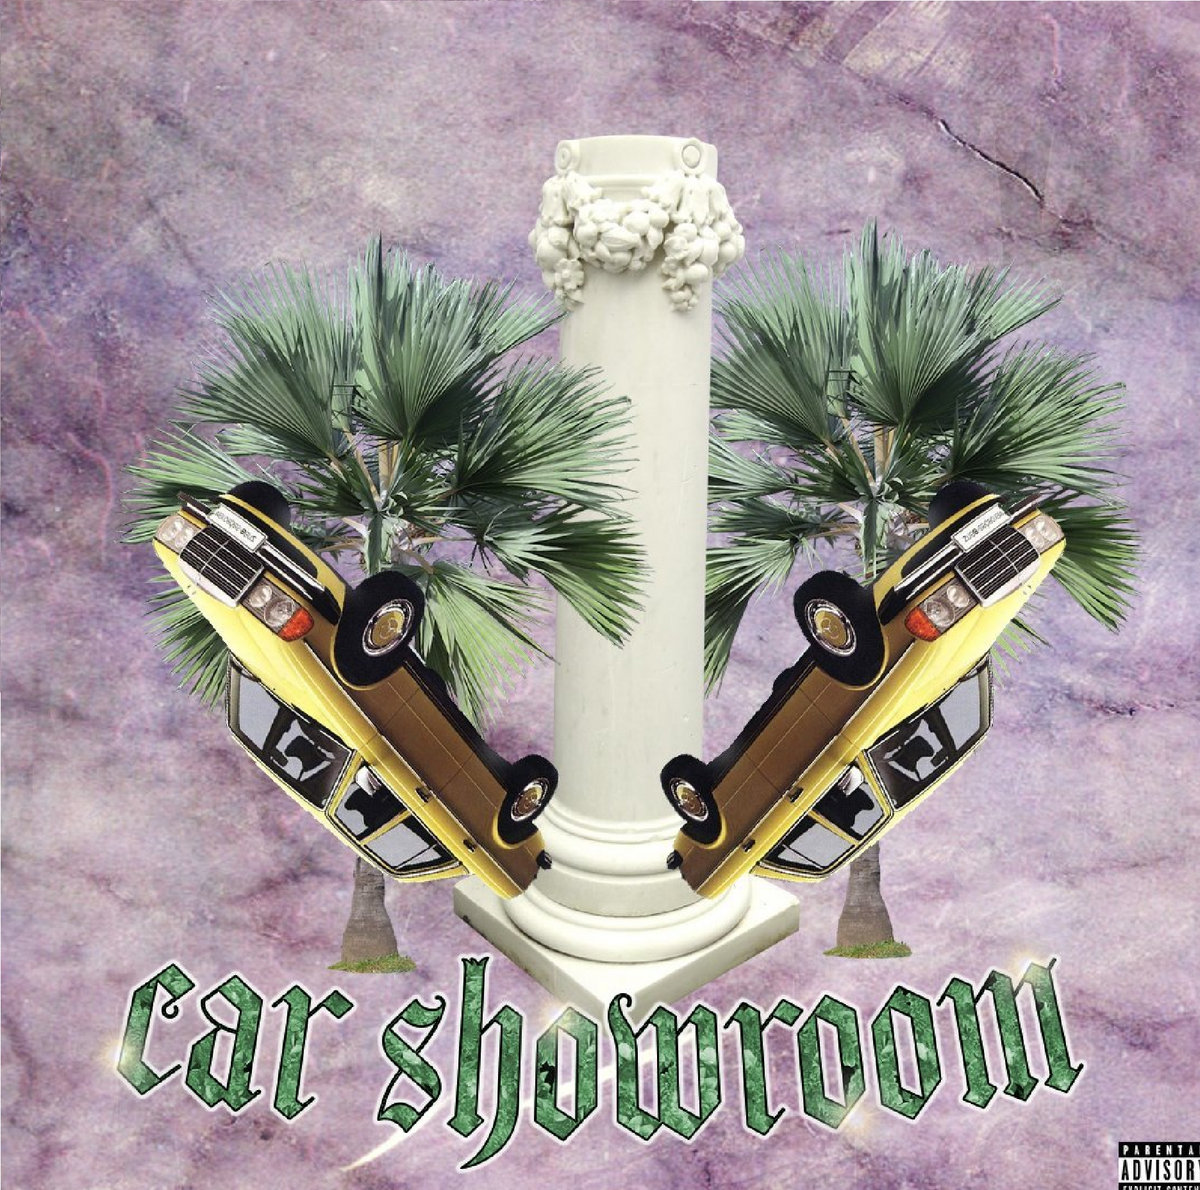 ALBUM REVIEW:  CAR SHOWROOM by MAITRO